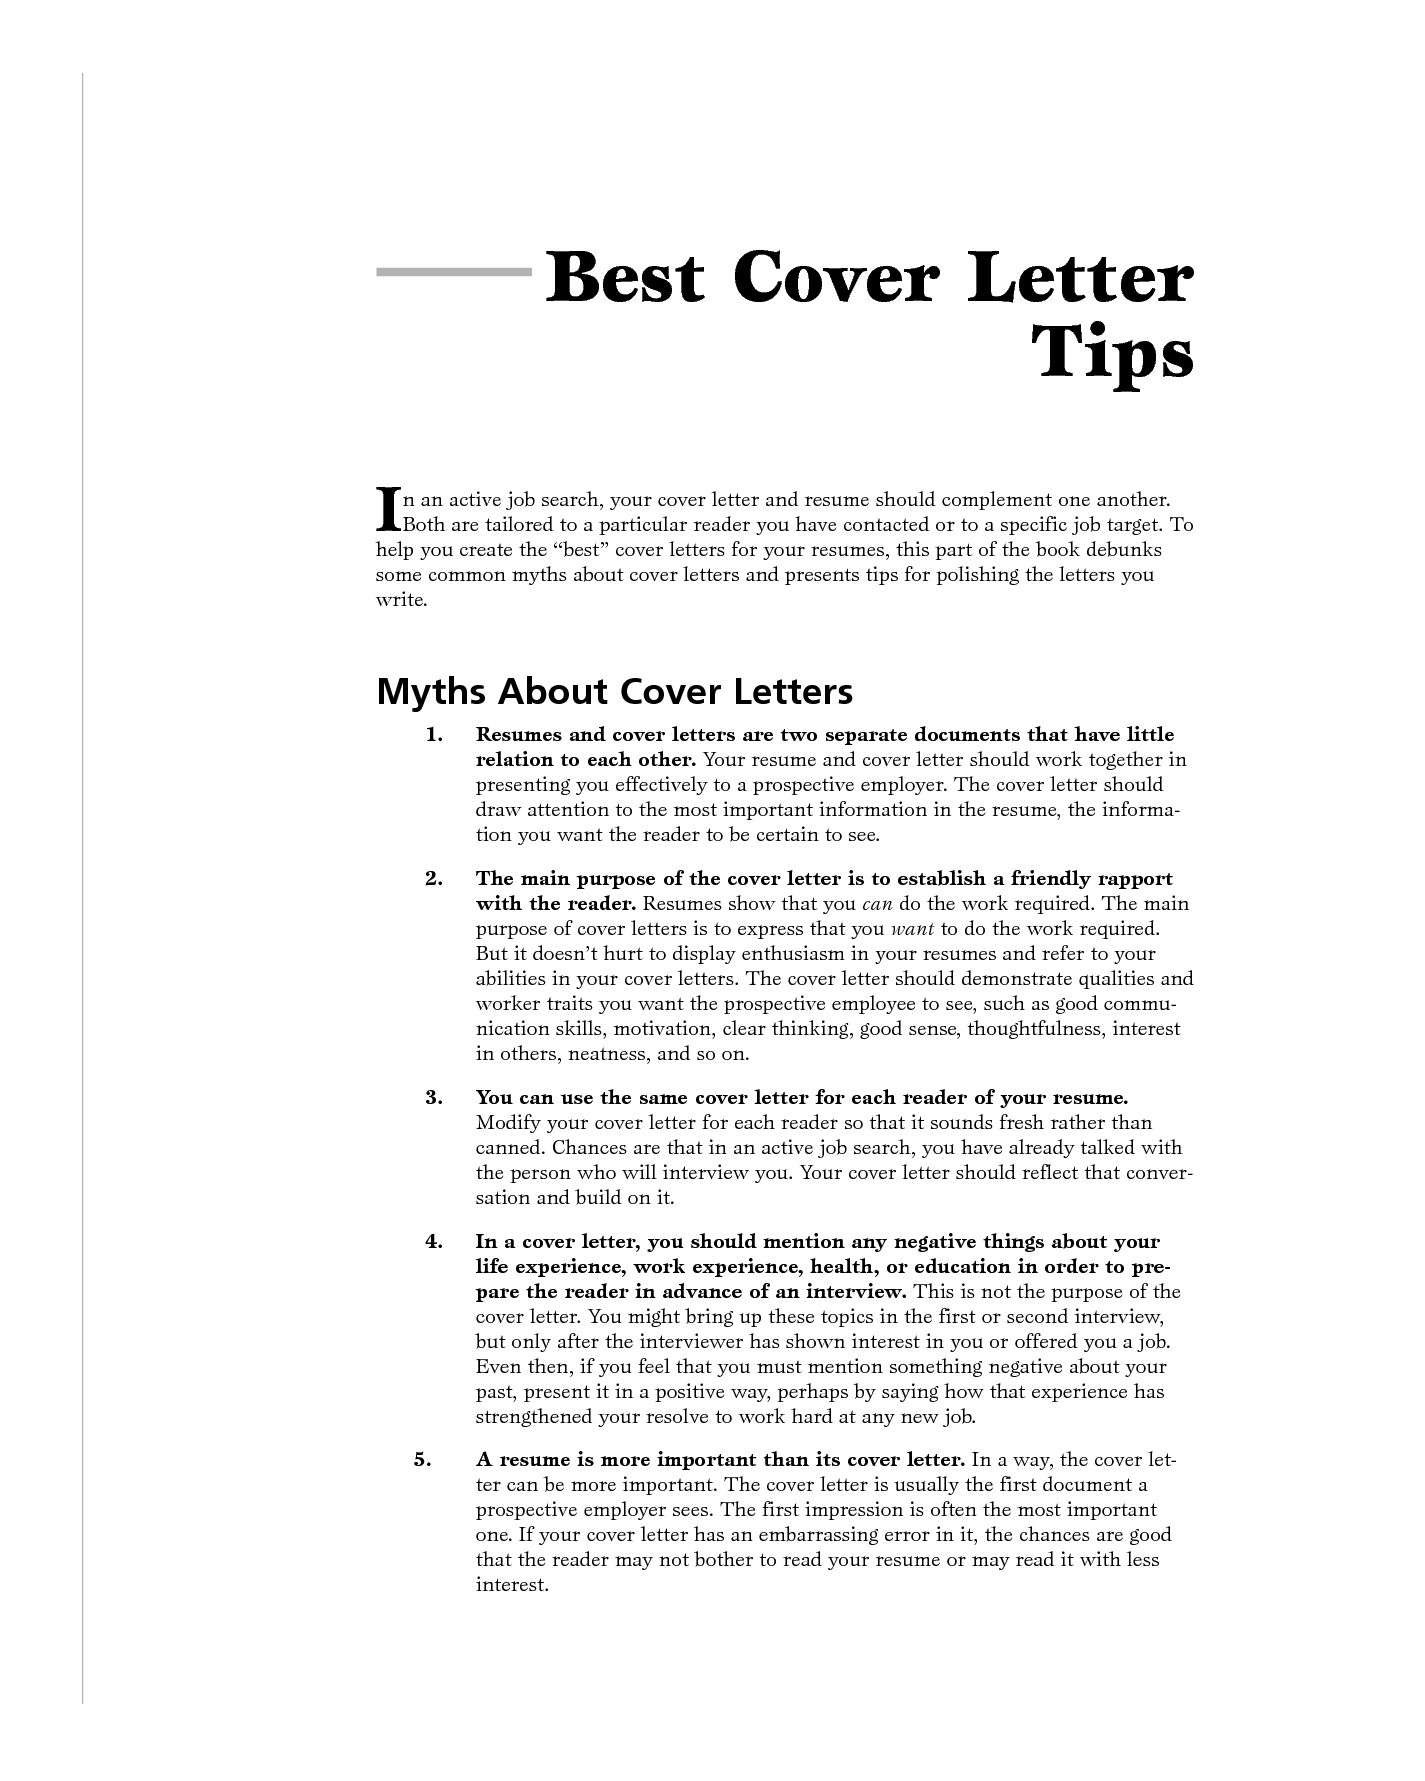 Same Cover Letter. 6 Things Your Cover Letter Should Never